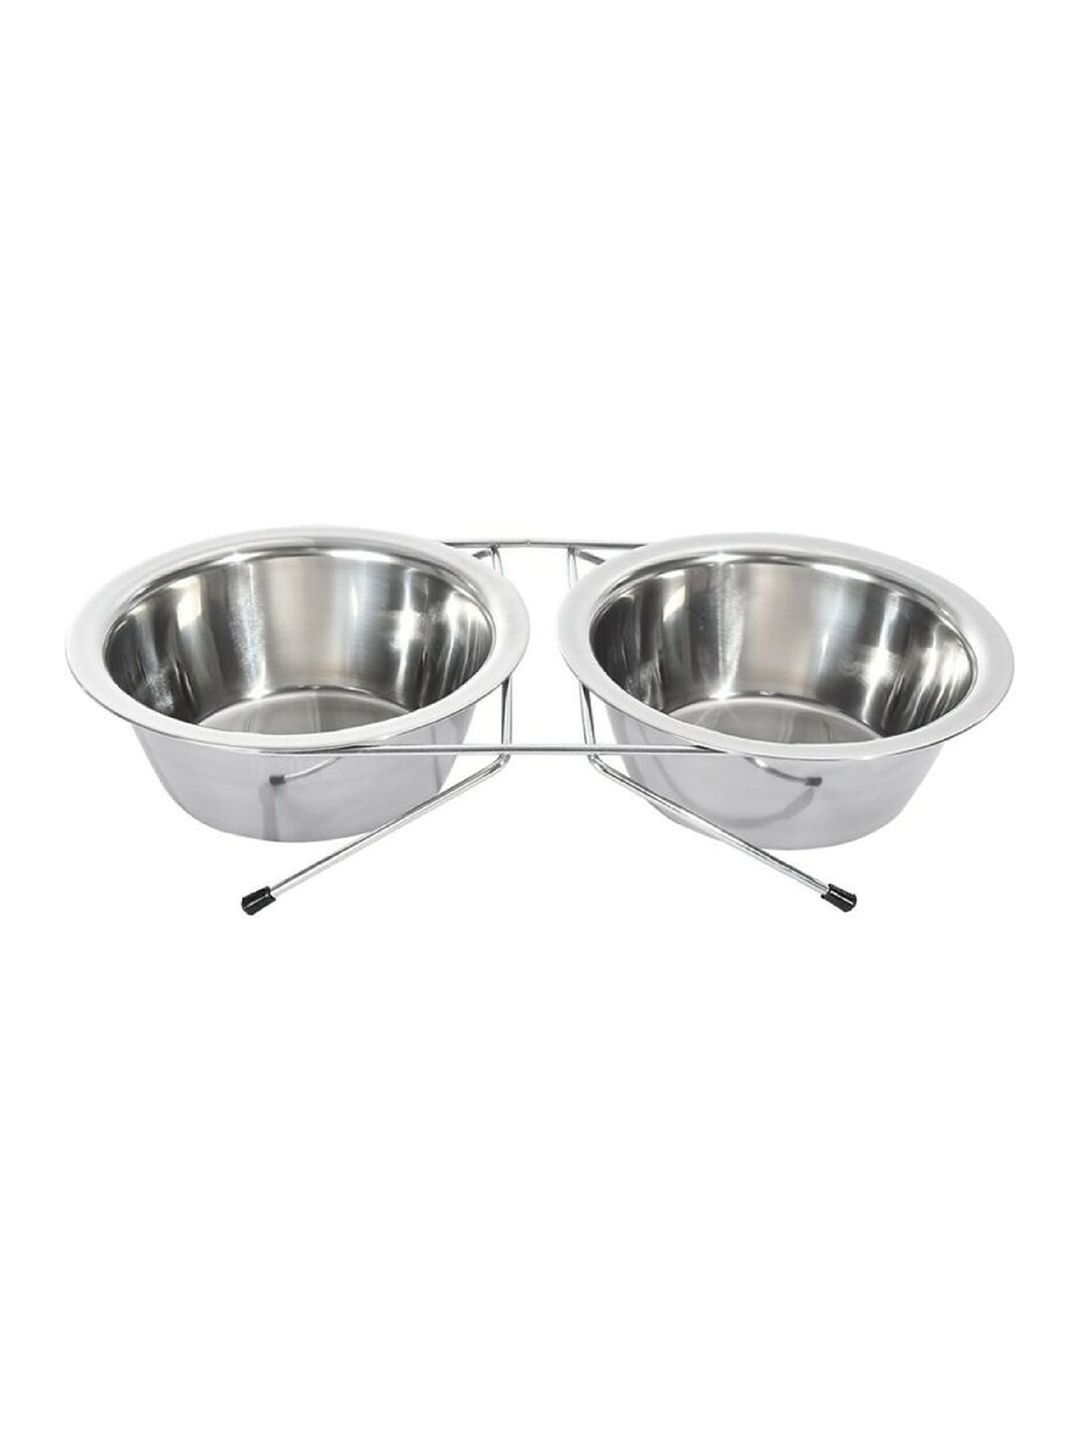 PETS EMPIRE Stainless Steel Dog Double Diner Pet Bowl Set